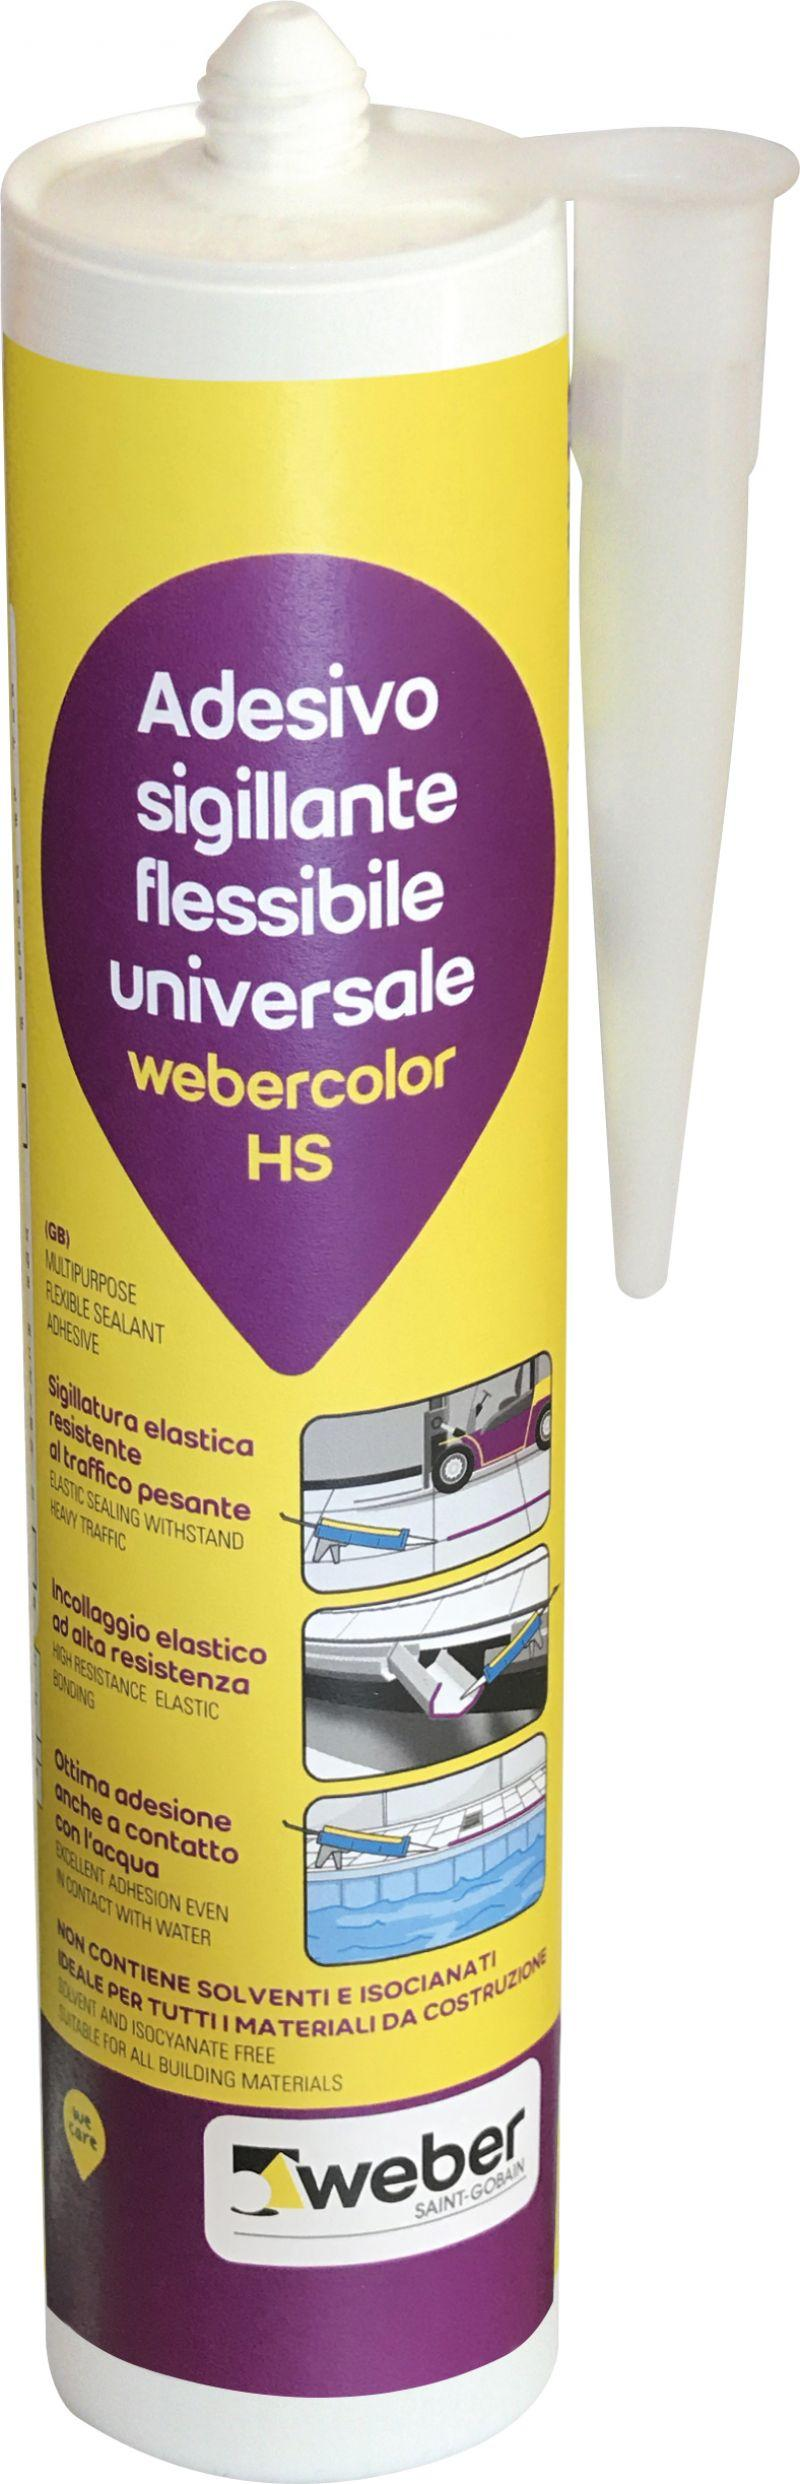 Silicone weber.color HS 1